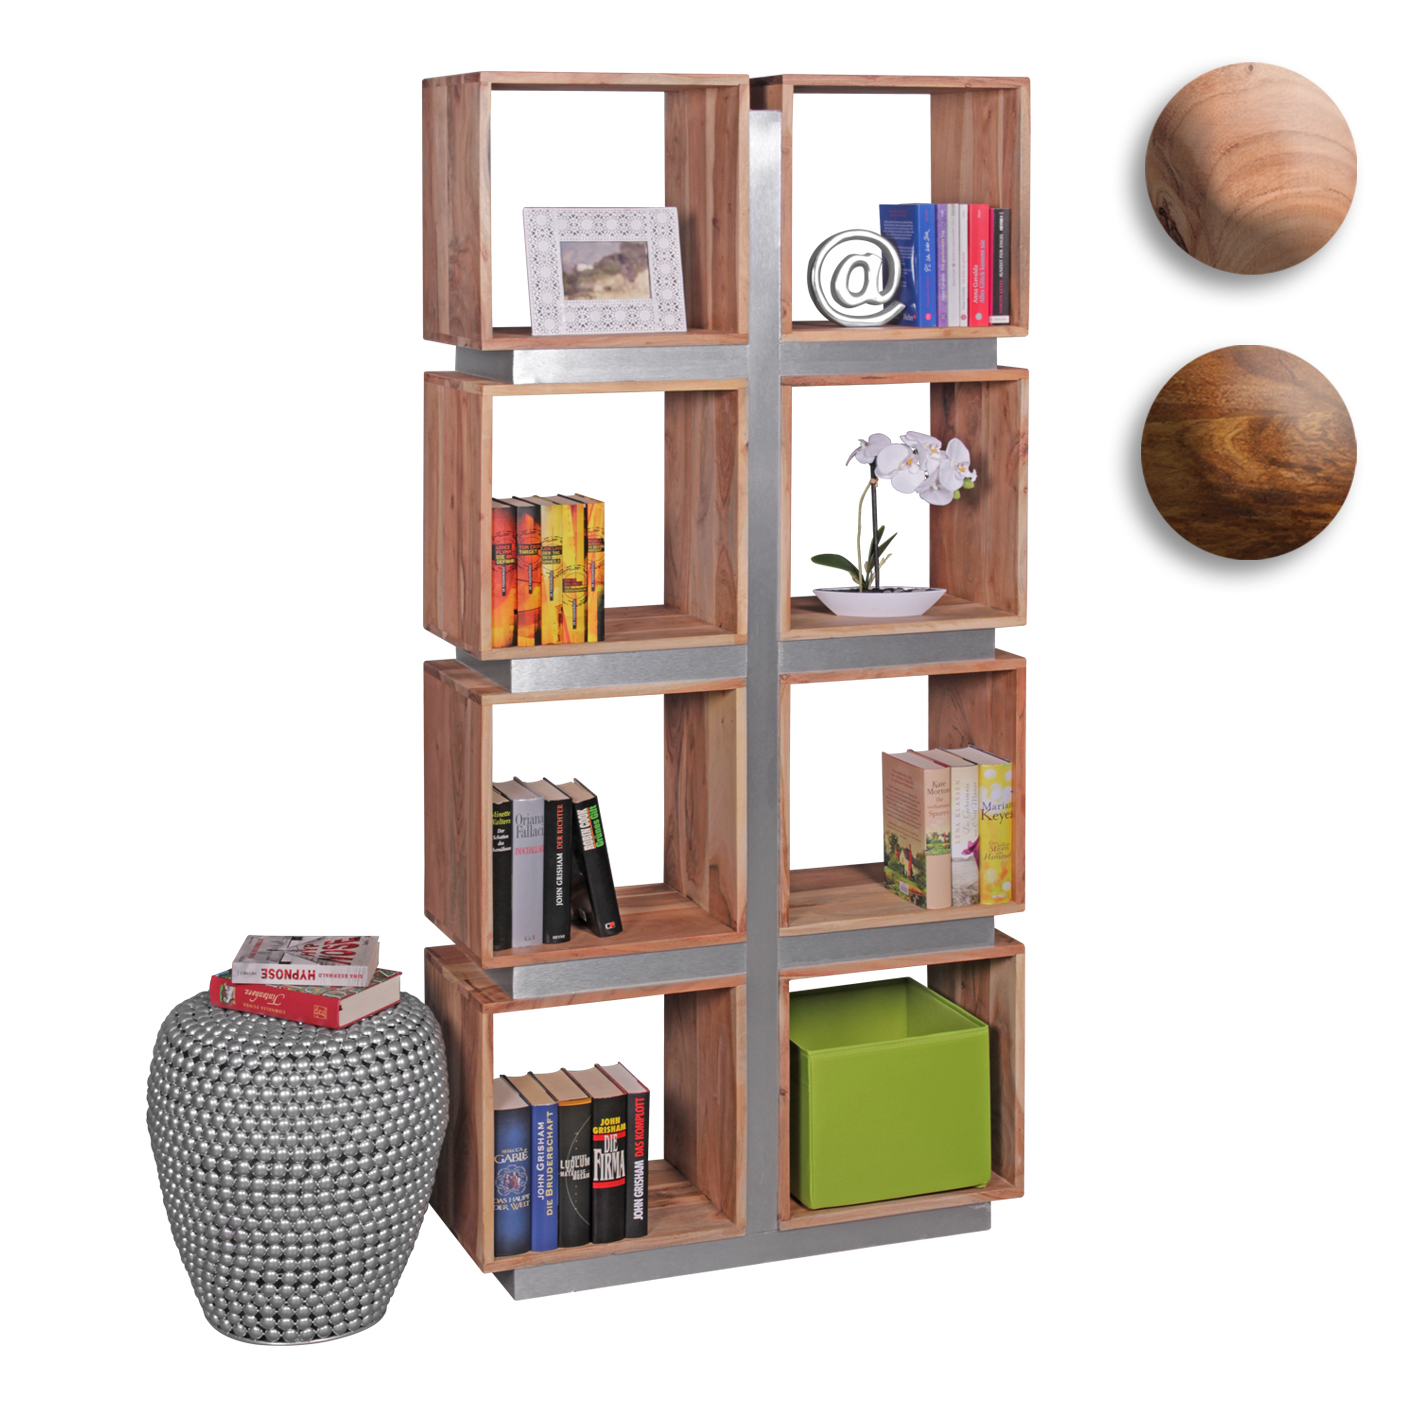 Regal Holz Cm Finebuy Bücherregal Massivholz 180 X 85 X 30 Cm Design Raumteiler Hohes Regal Holz Landhaus Stil Regalsystem